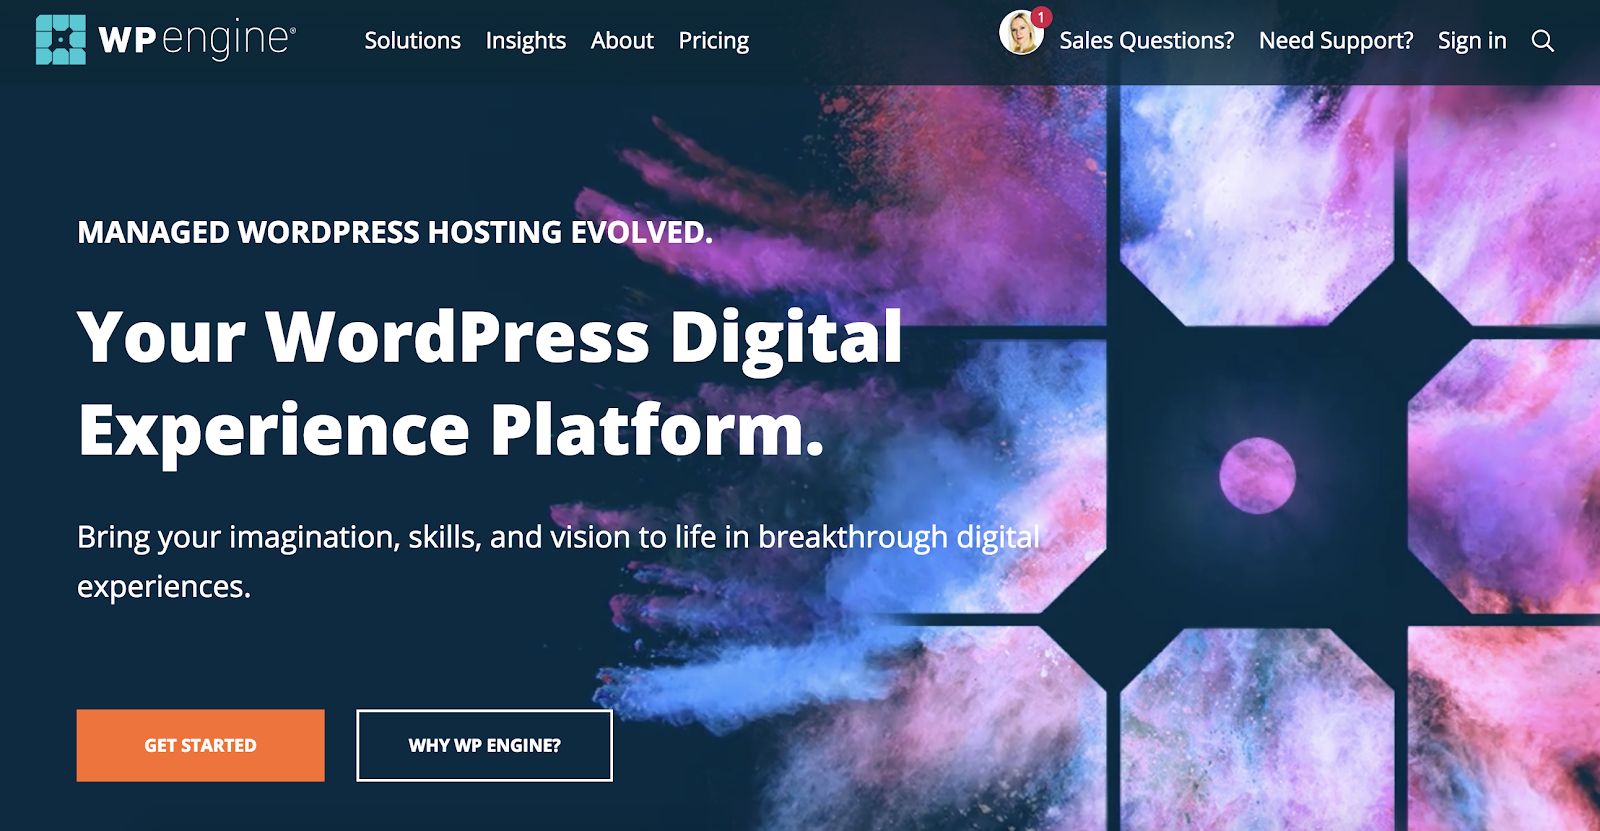 WP Engine platform for WordPress website